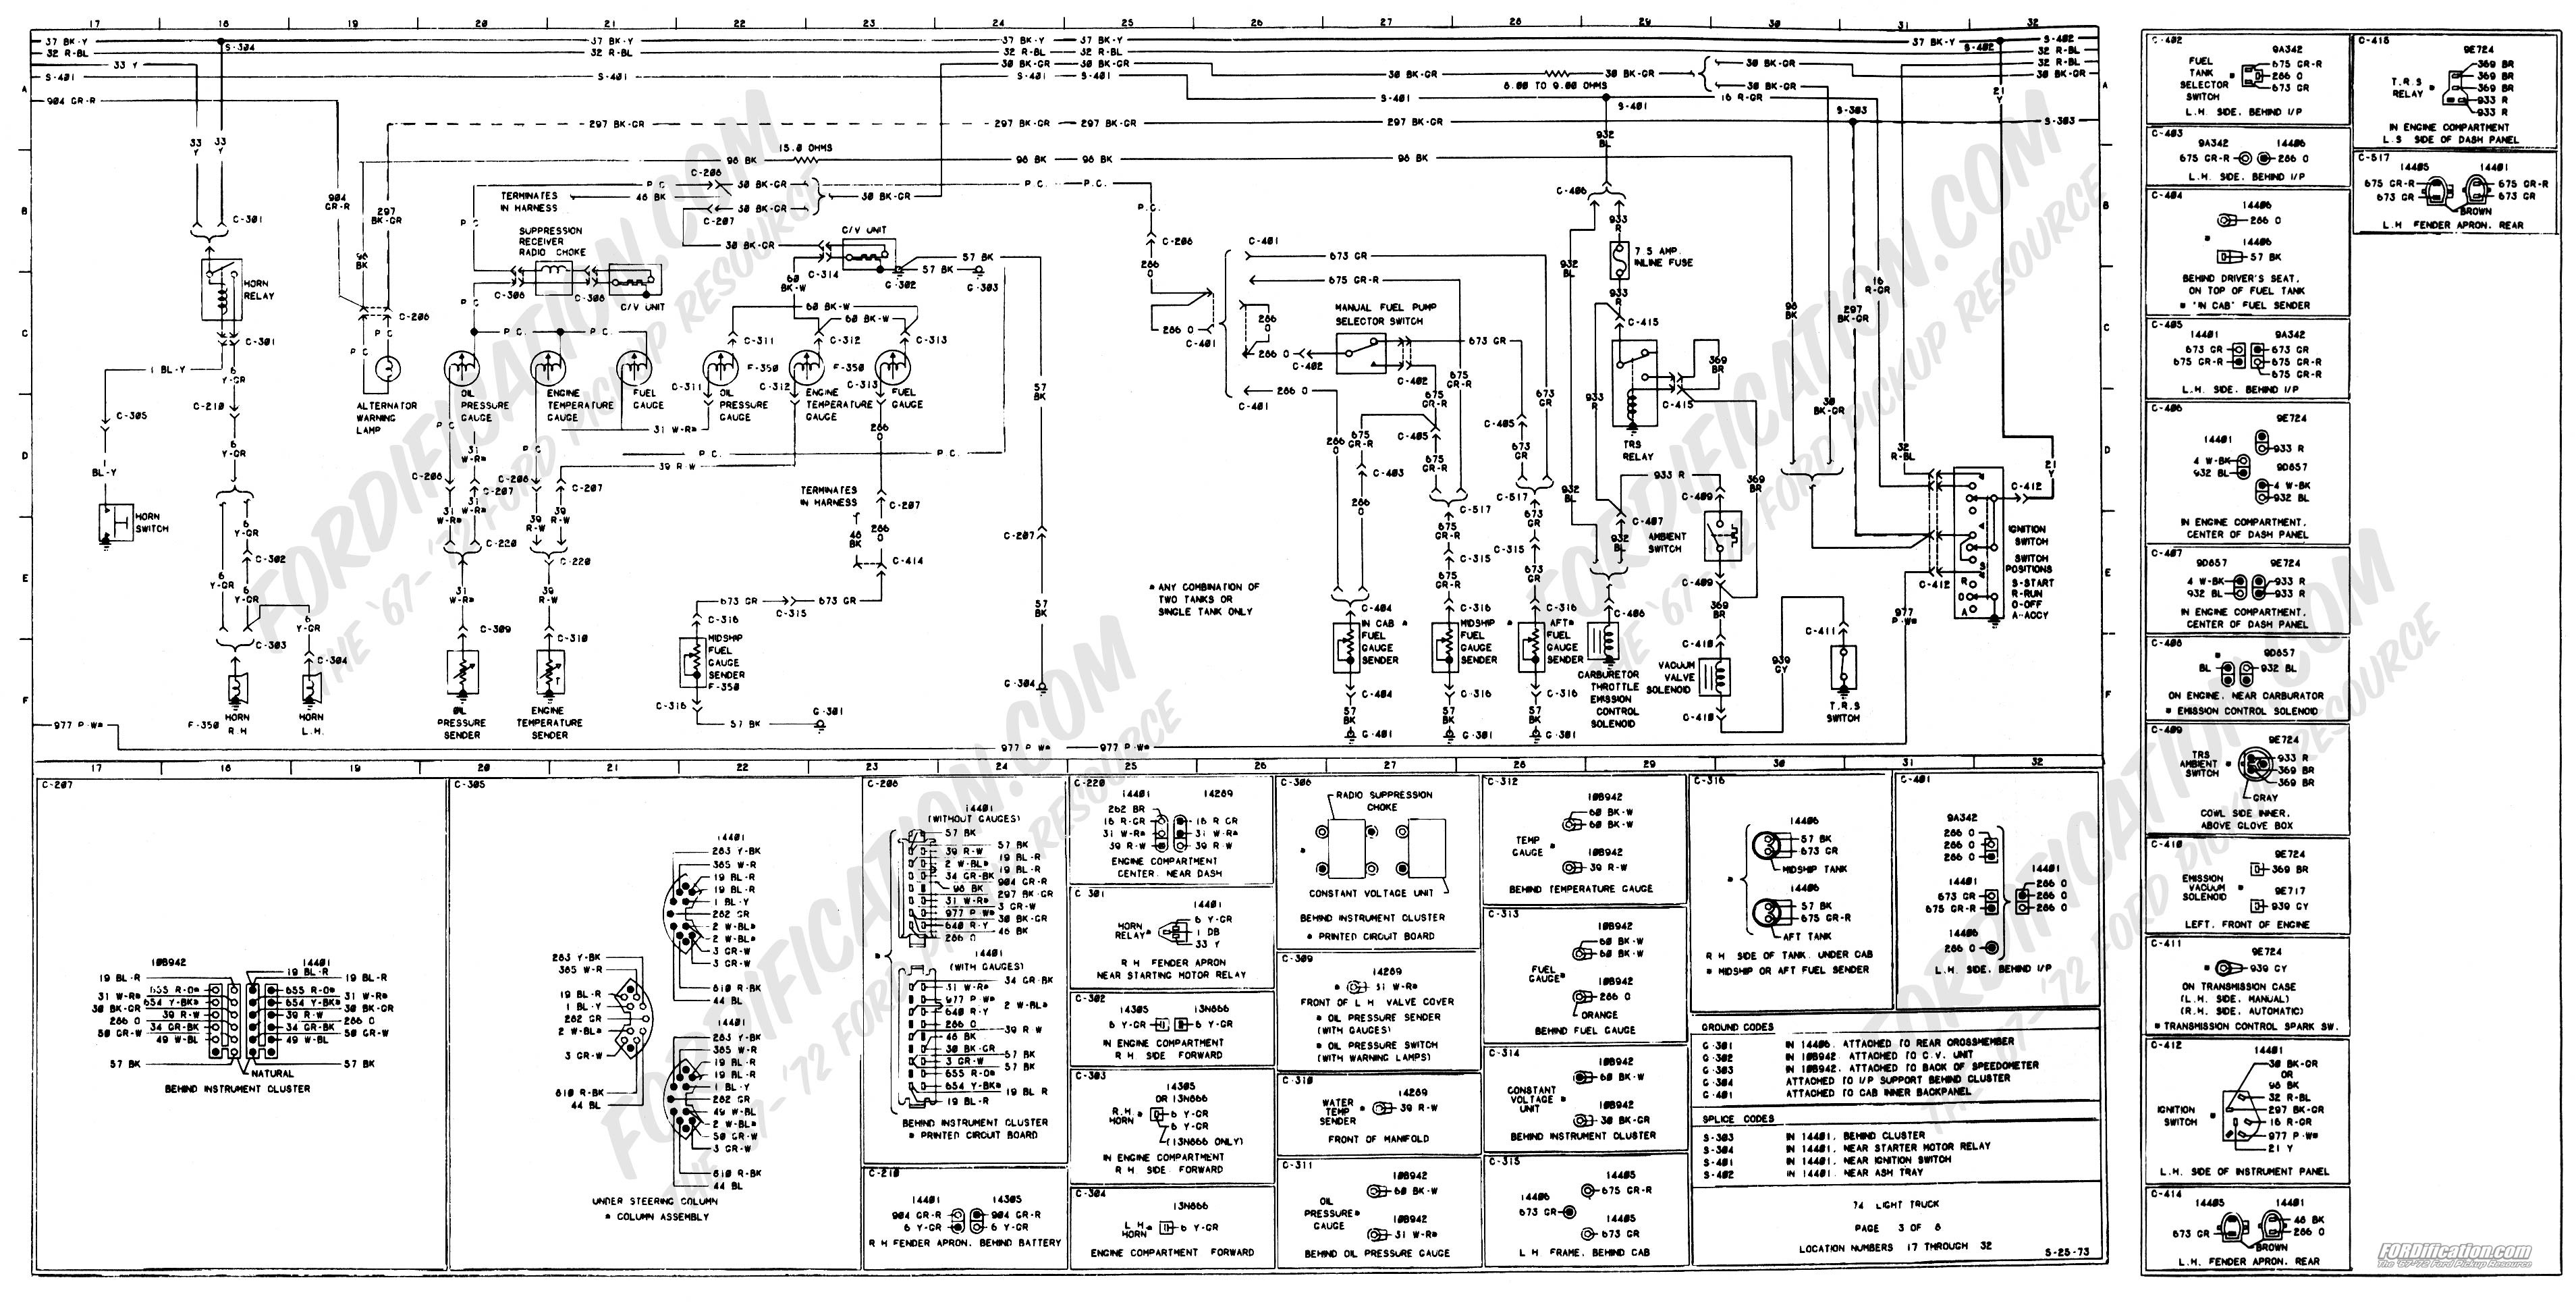 2004 Ford F150 Engine Diagram Panel 1997 1988 F 150 Fuel Pump Wiring 1973 1979 Truck Diagrams Schematics Fordification Of